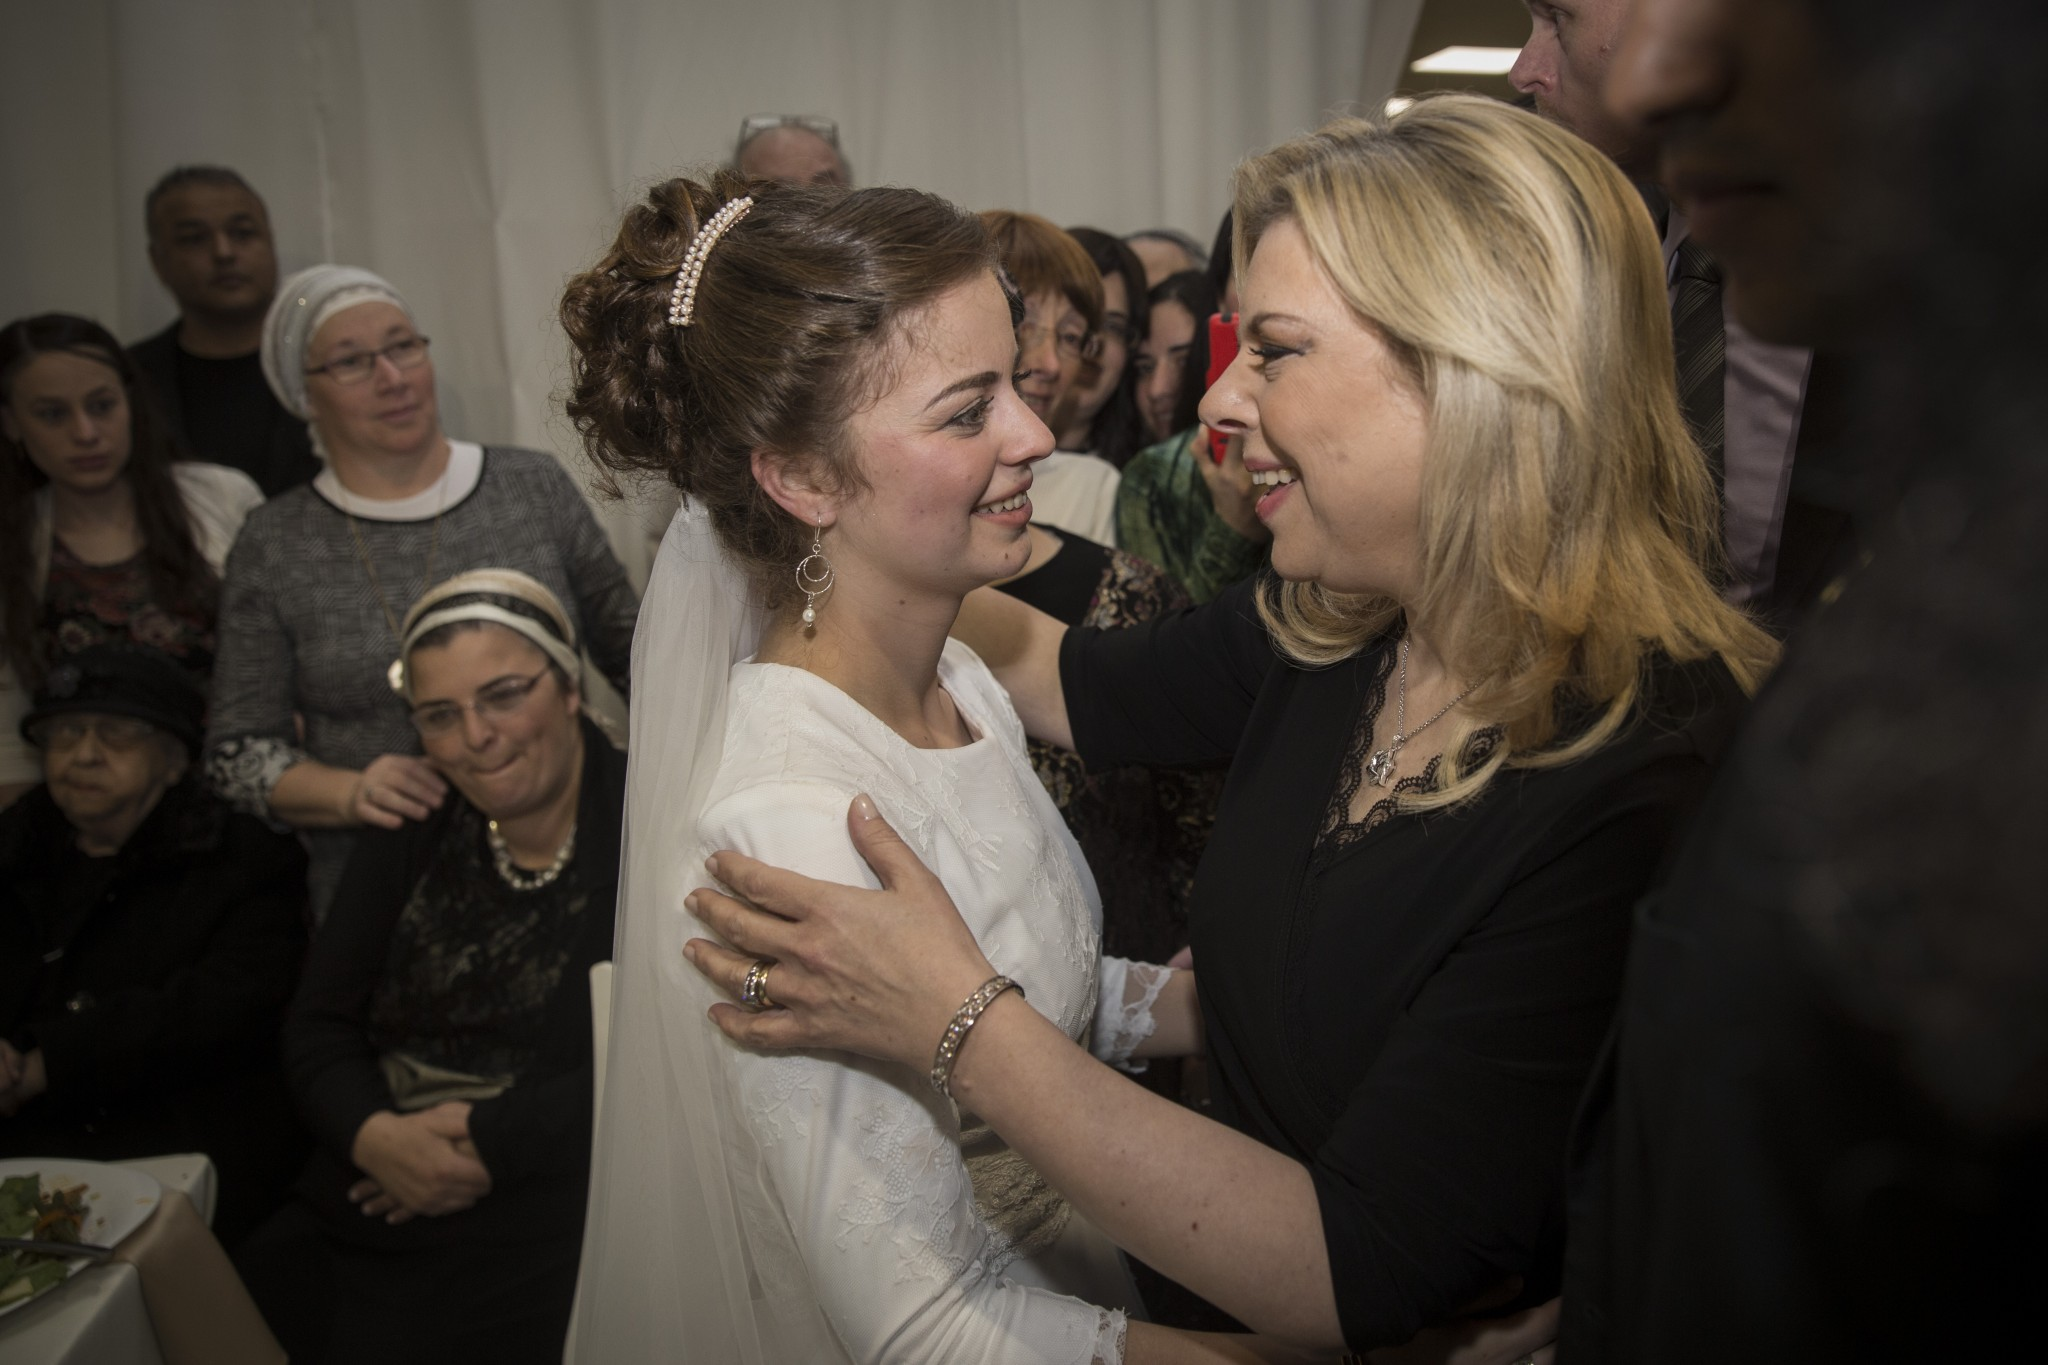 Sara Netanyahu greeting Sarah Litman at her wedding in the Jerusalem International Convention Center. Photo by Hadas Parush/FLASH90